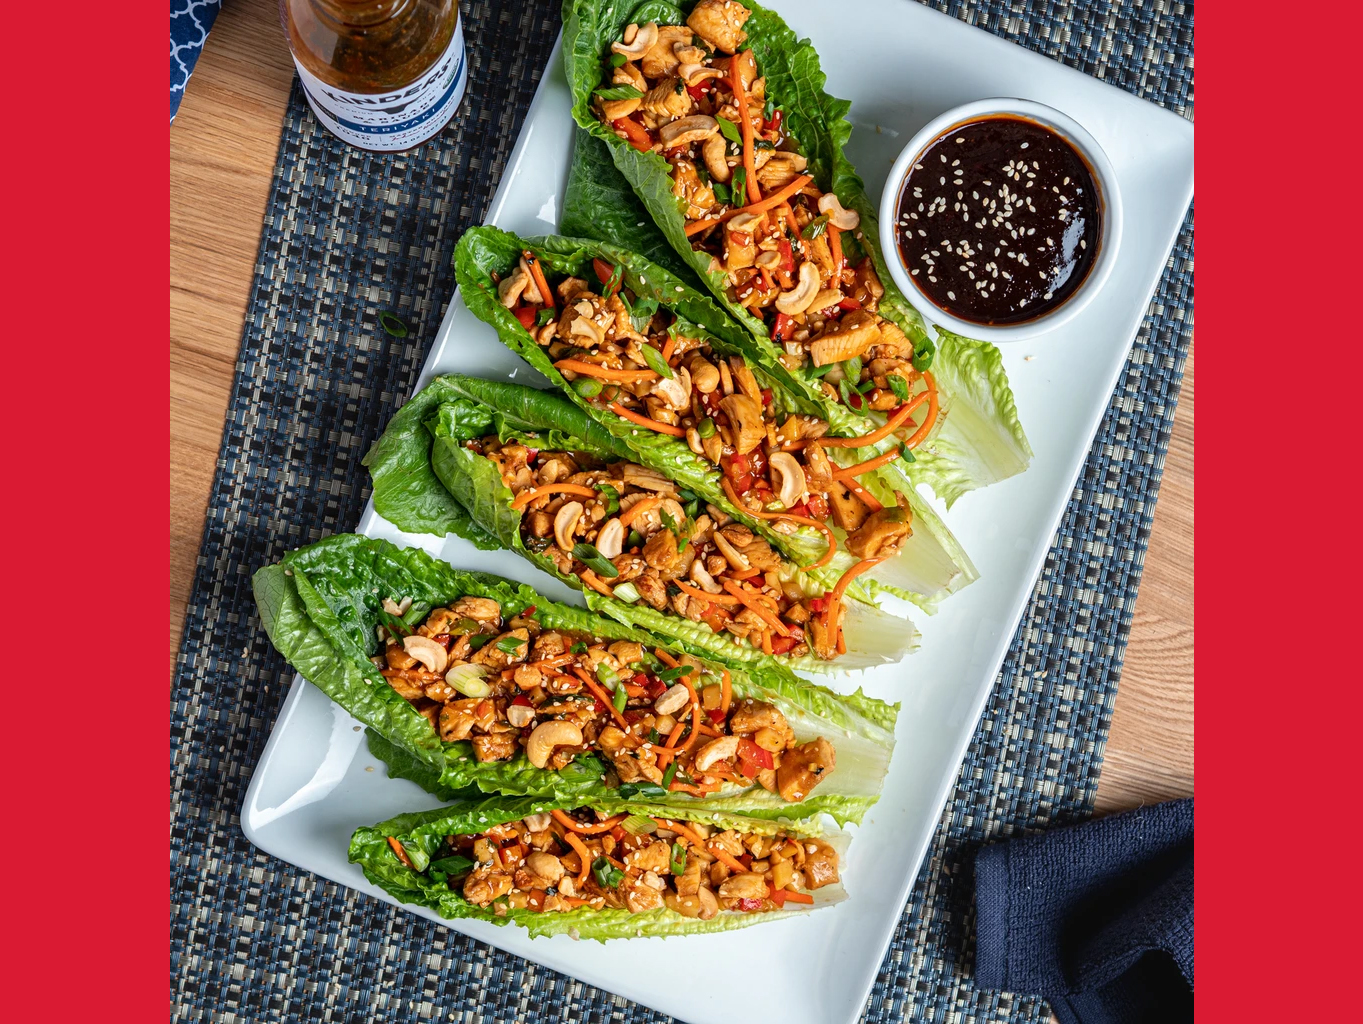 Teriyaki Chicken Lettuce Wraps with Rice is a menu option for the Meal Kits available on August 16.